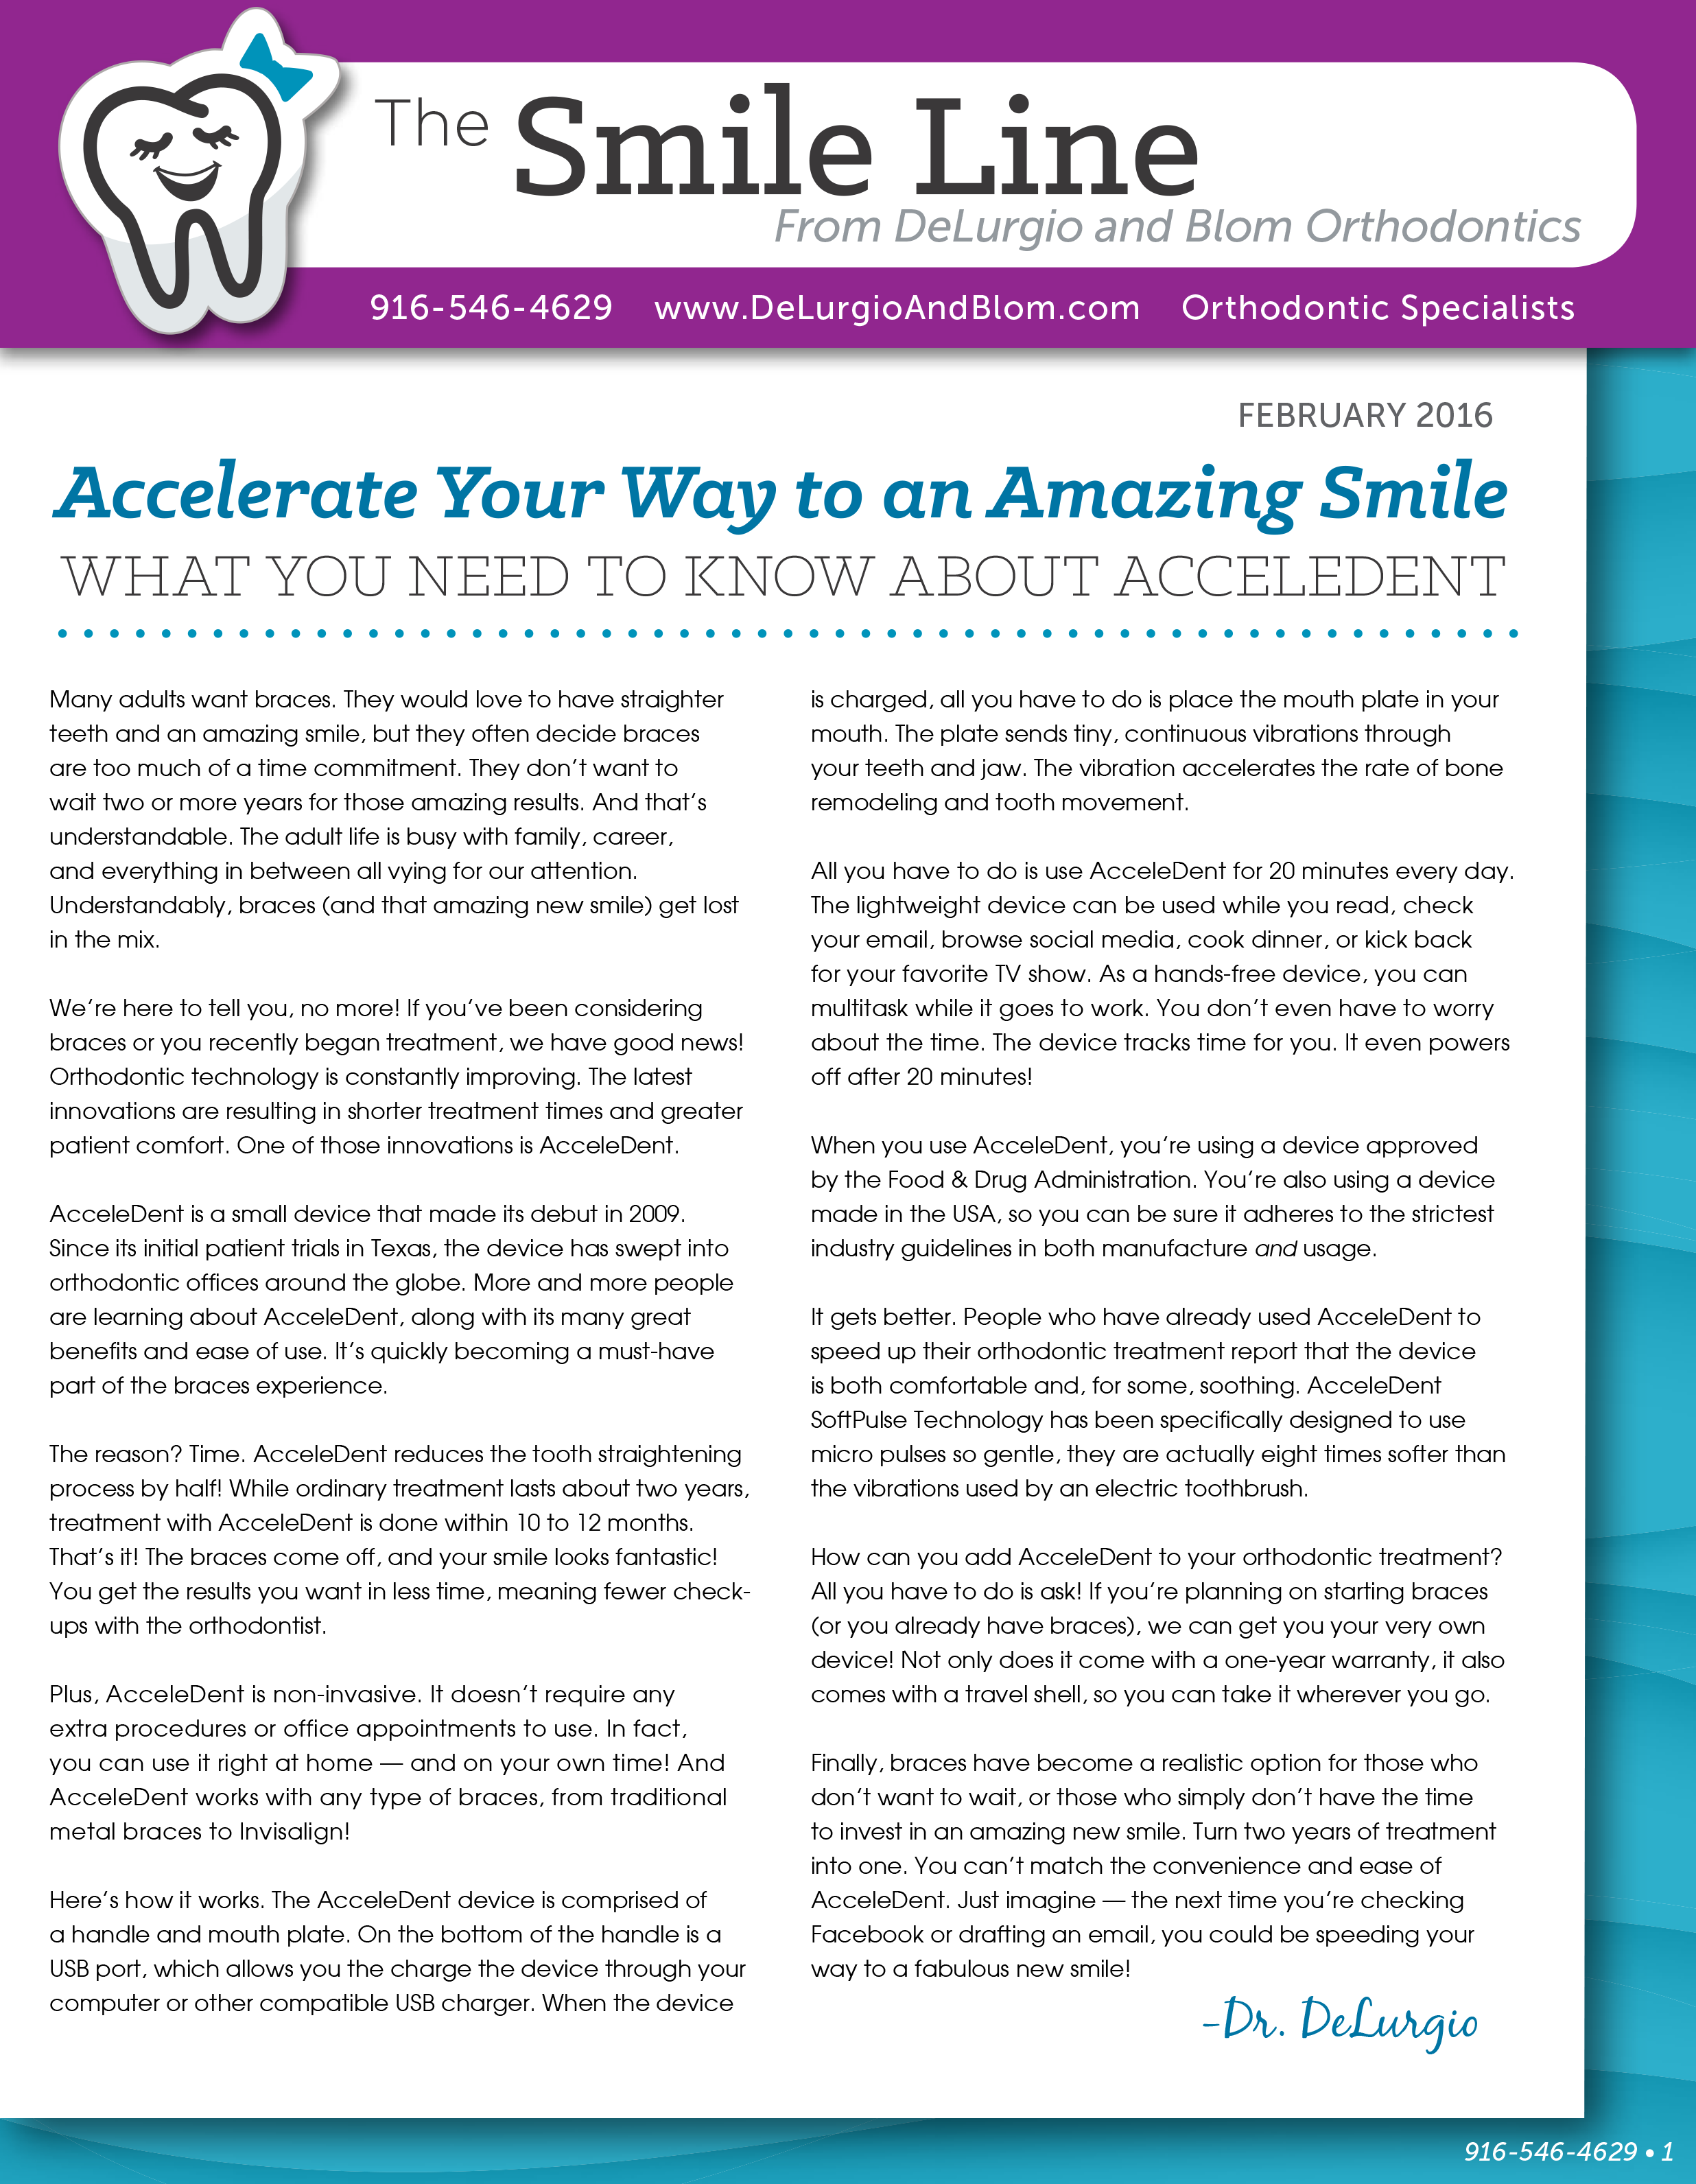 delurgio and blom orthodontics newsletter february 2016